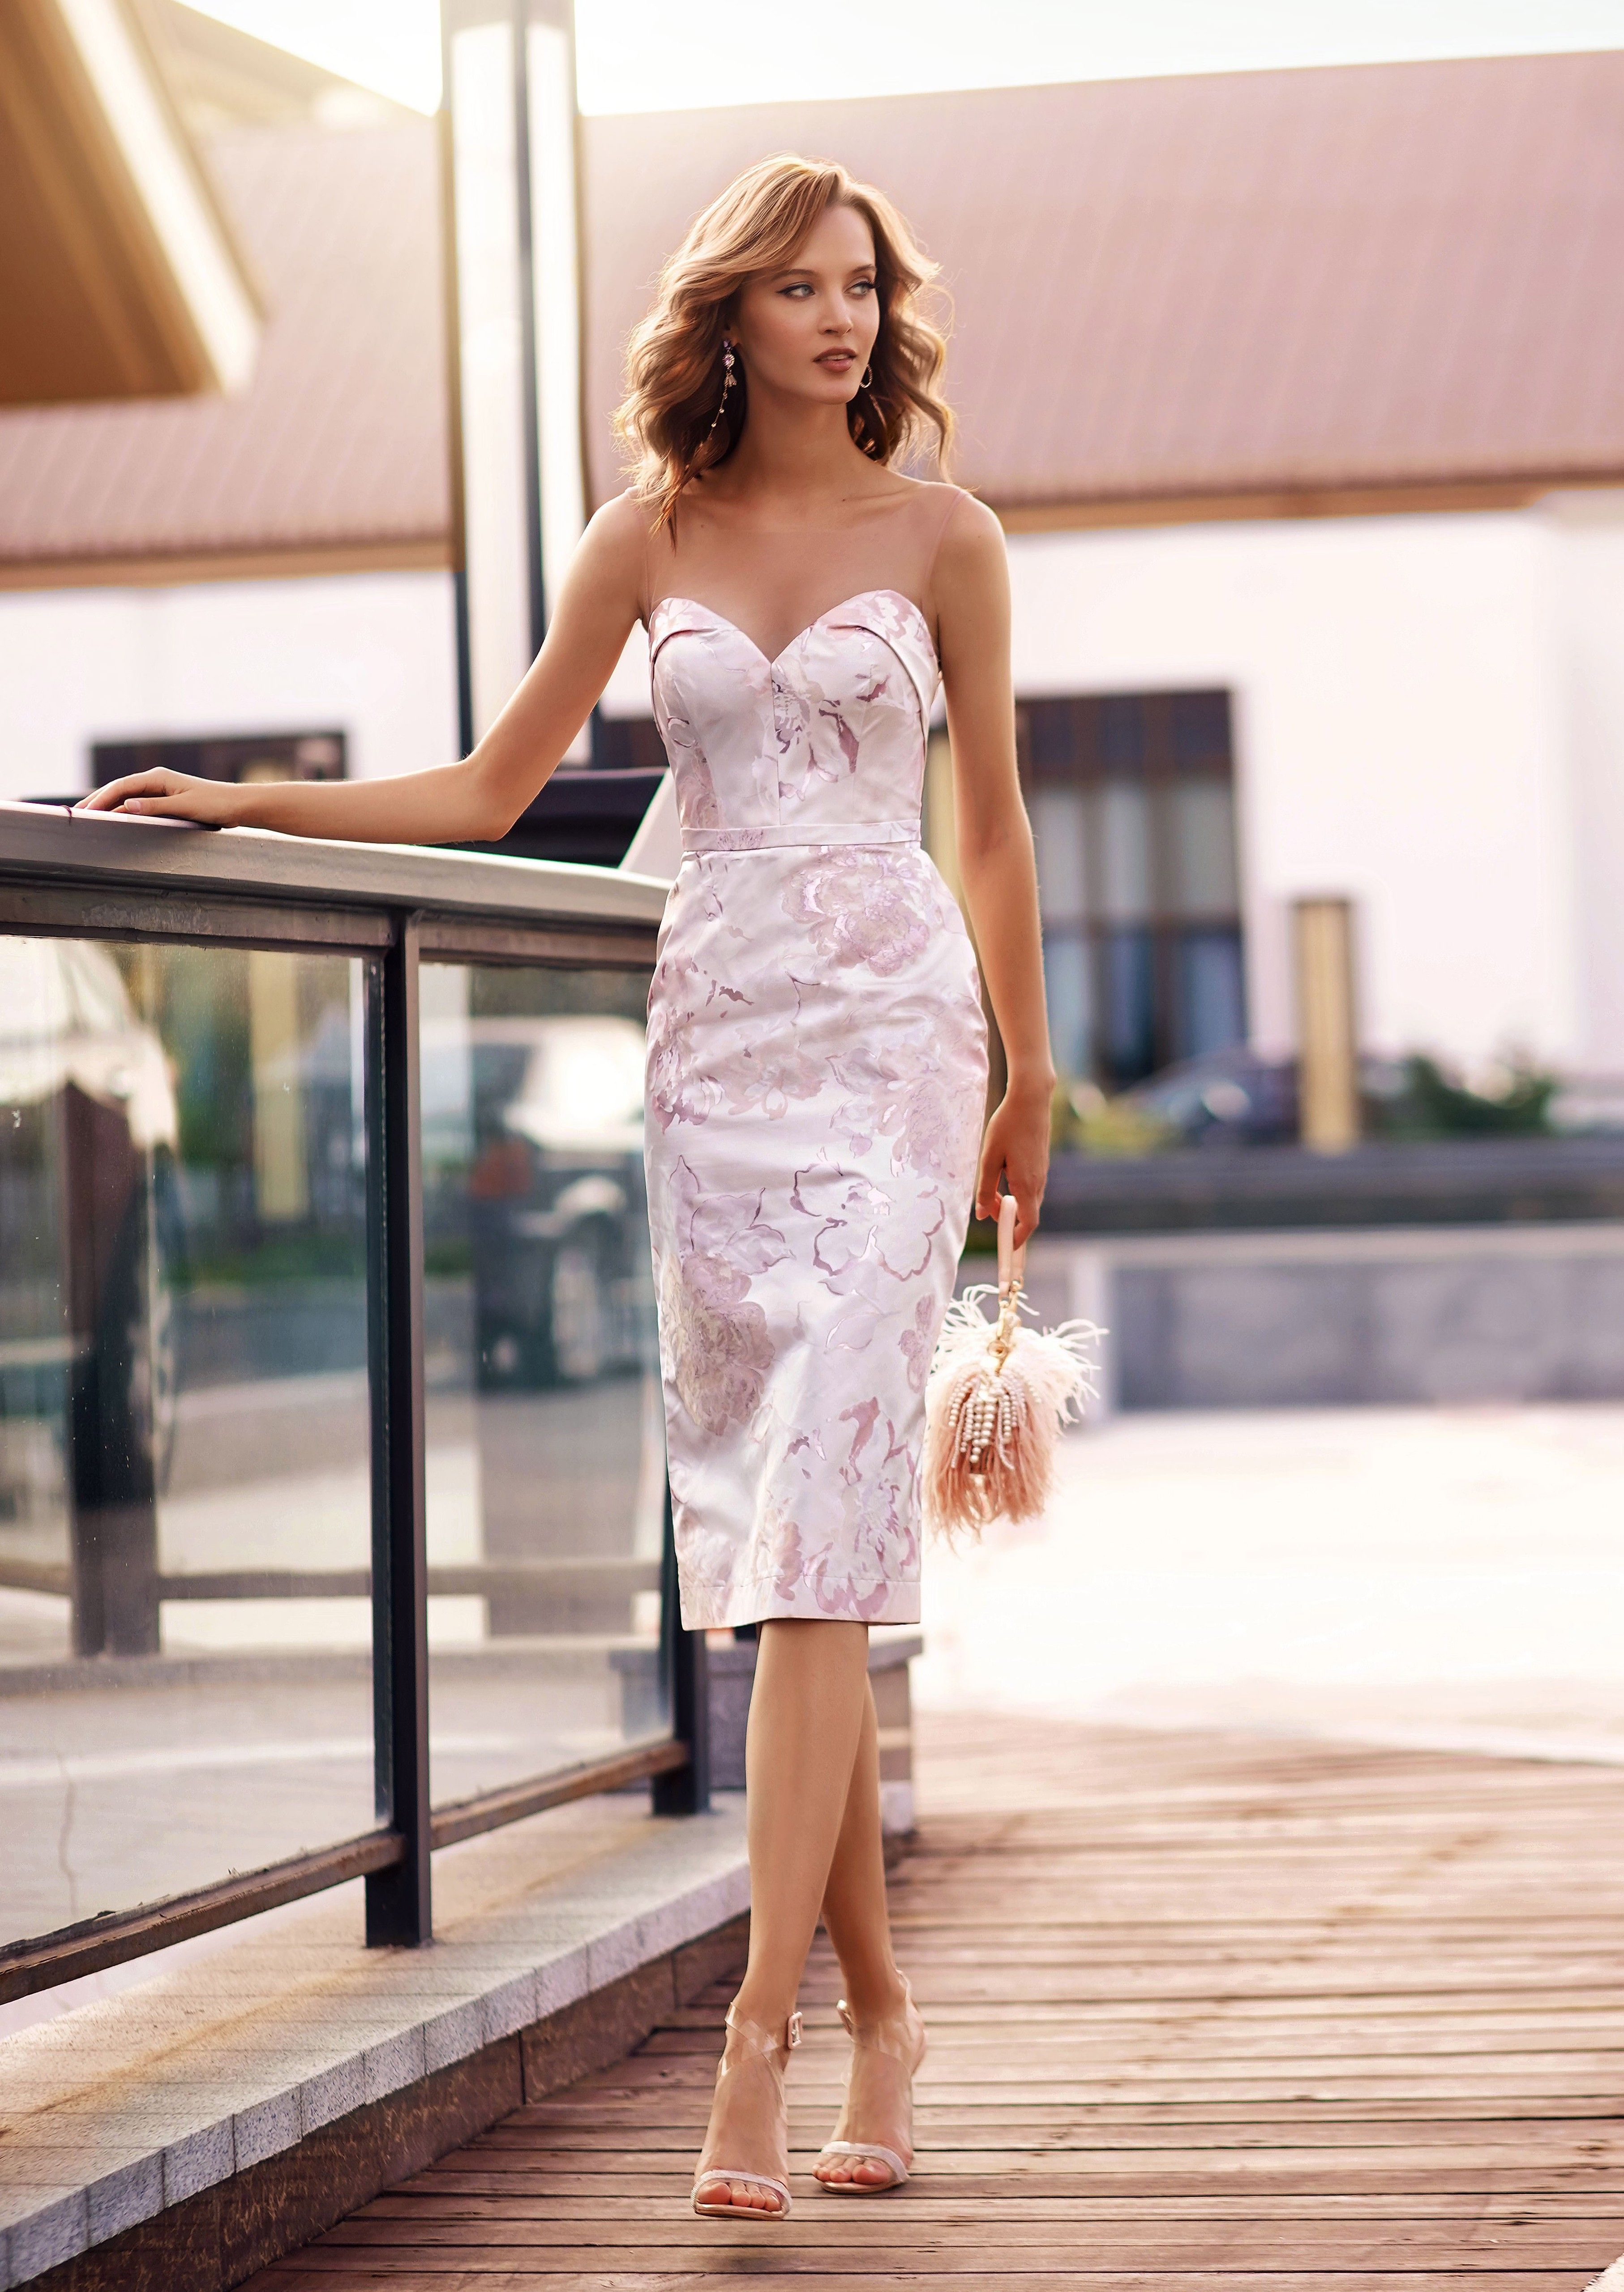 Floral Dress With Plunging Sweetheart Neckline Dresses Formal Dresses Strapless Dress Formal [ 5119 x 3627 Pixel ]